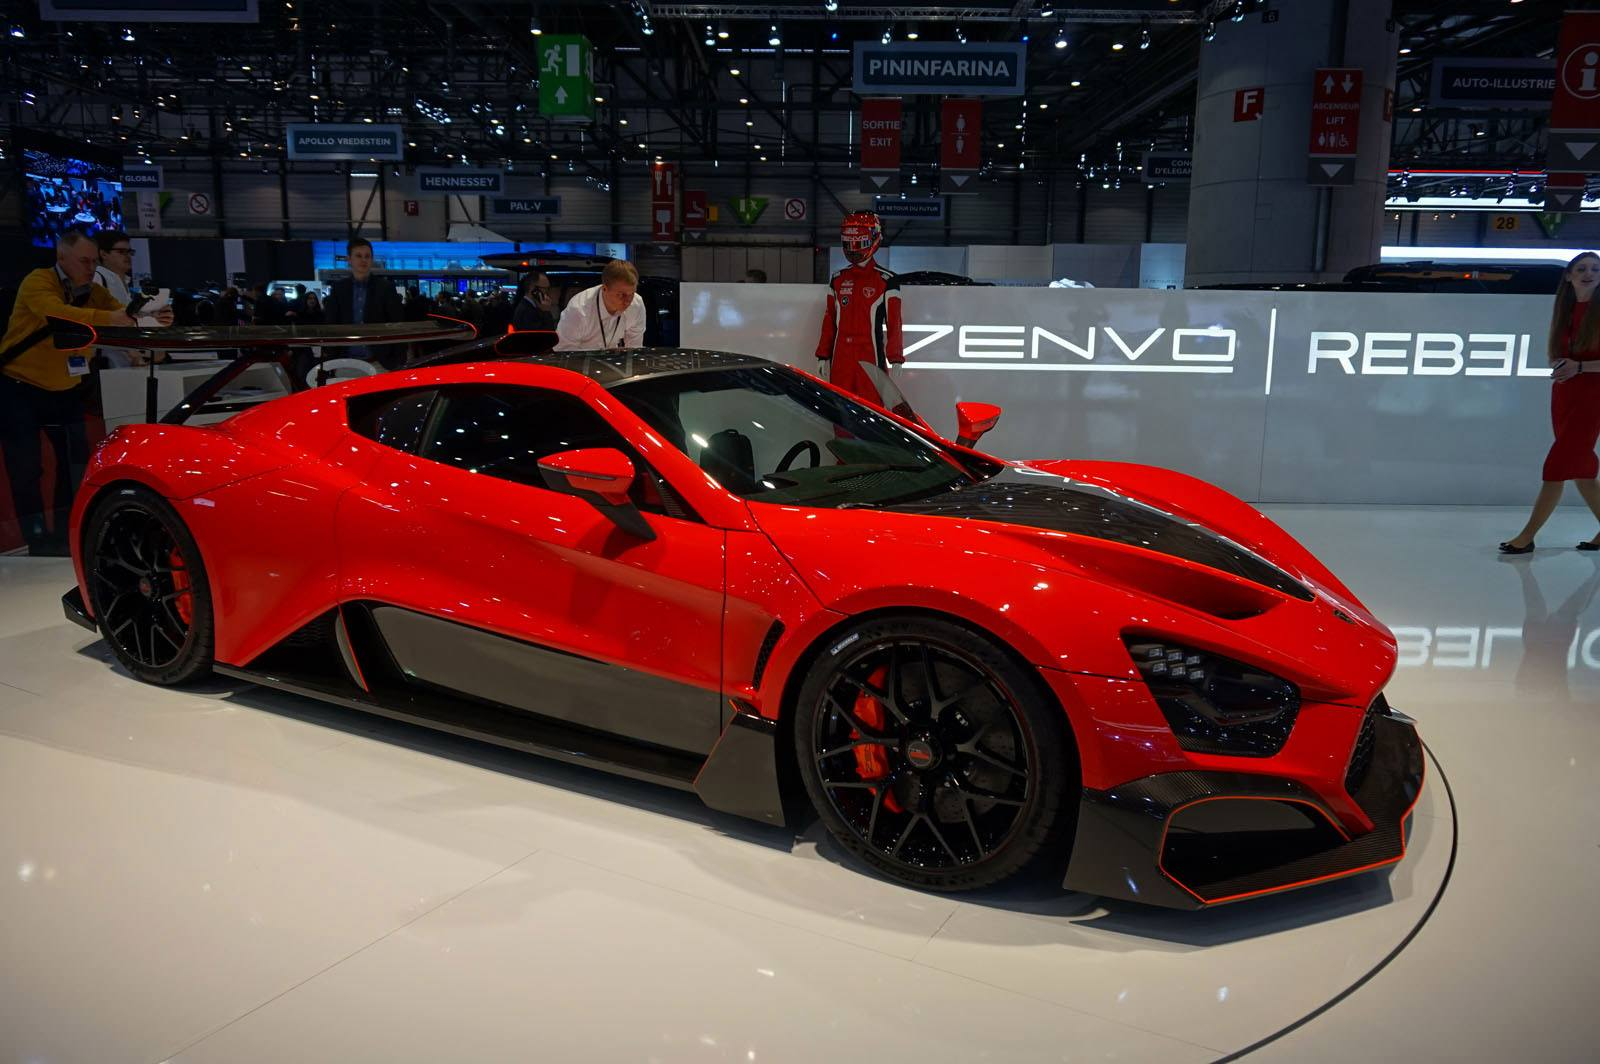 Capital One Car Payment >> Top 10 Most Desirable Cars from the 2018 Geneva Motor Show ...